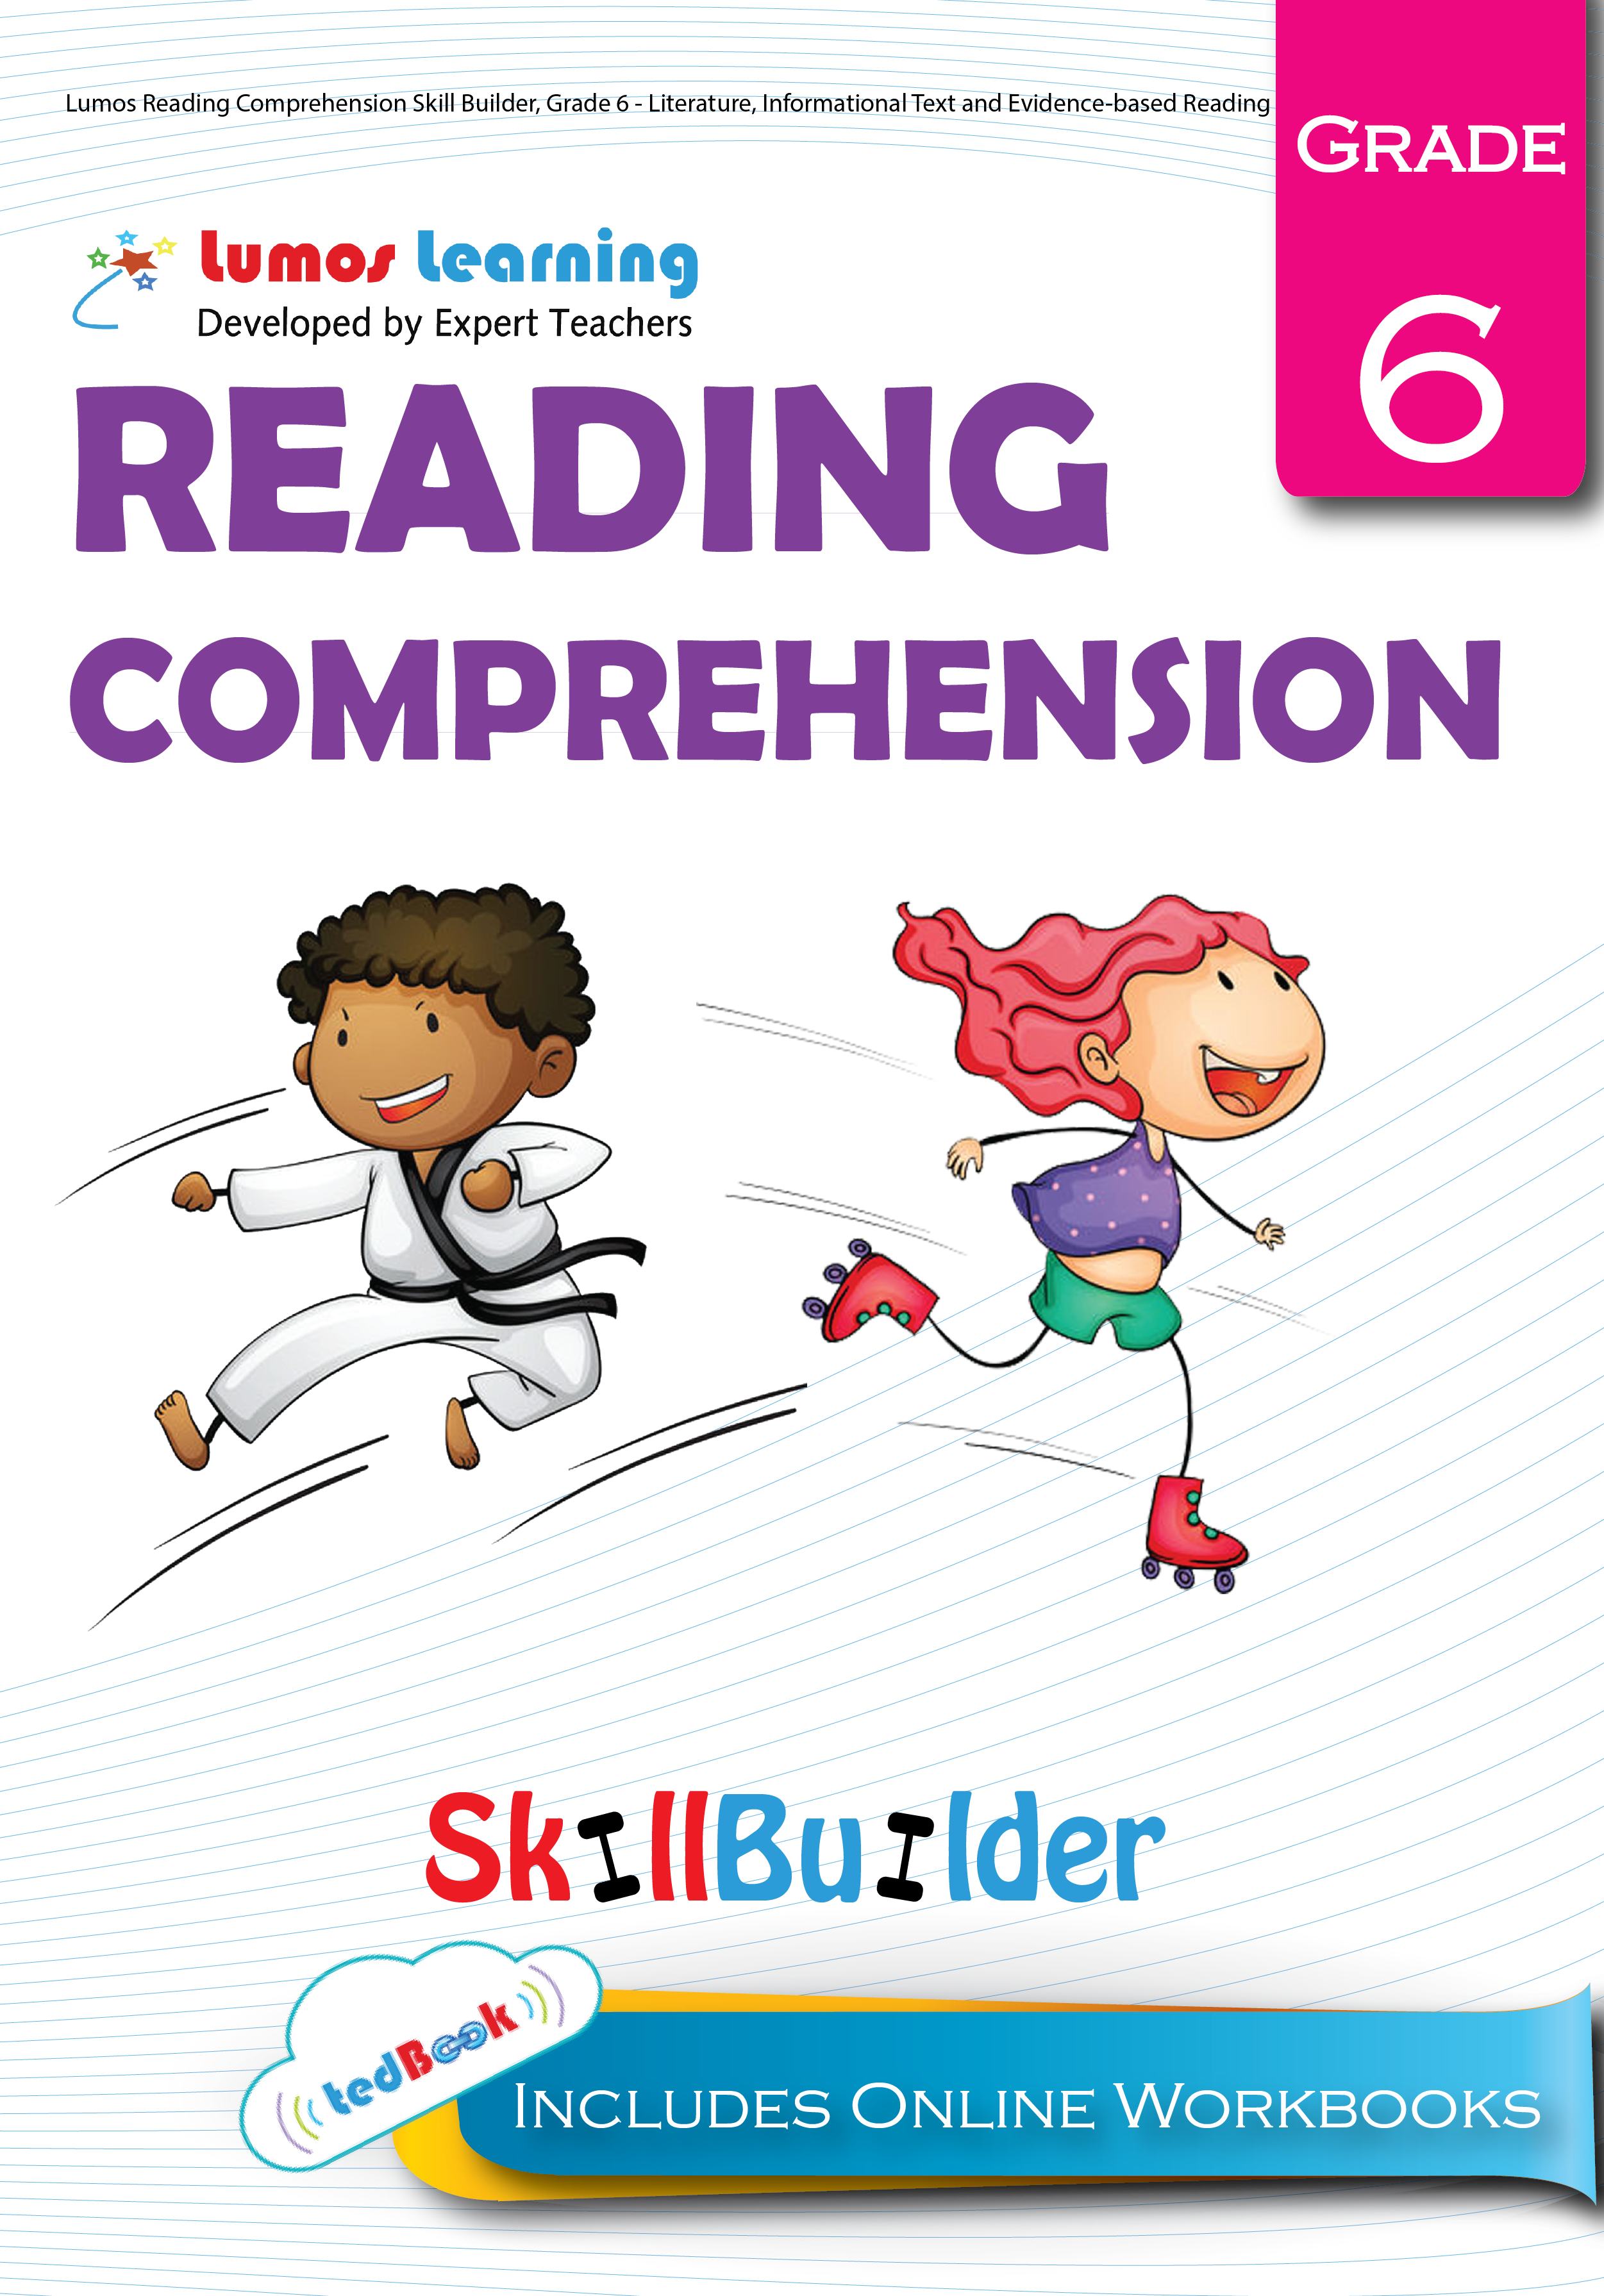 Grade 6 Reading Comprehension